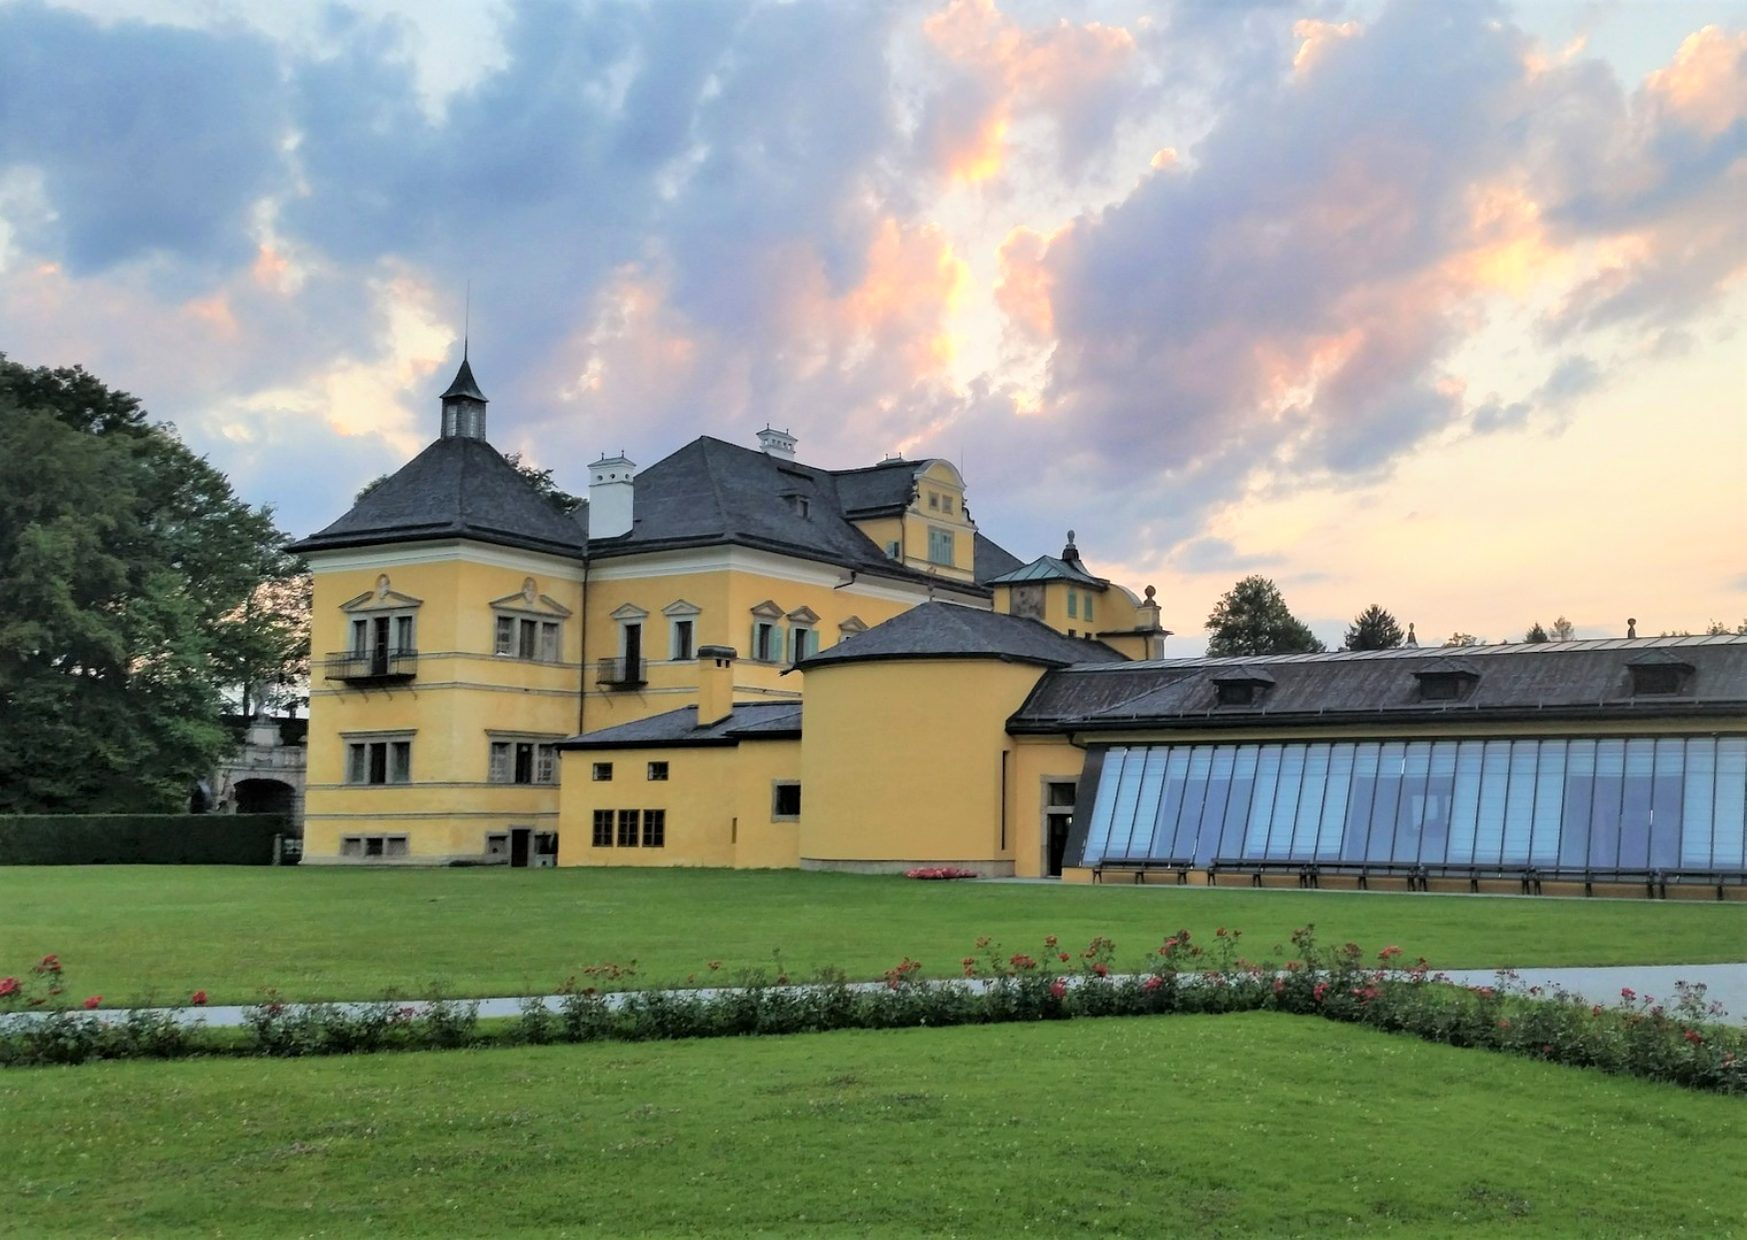 Salzburg guide - Hellbrunn Palace - photo by Voices of Travel